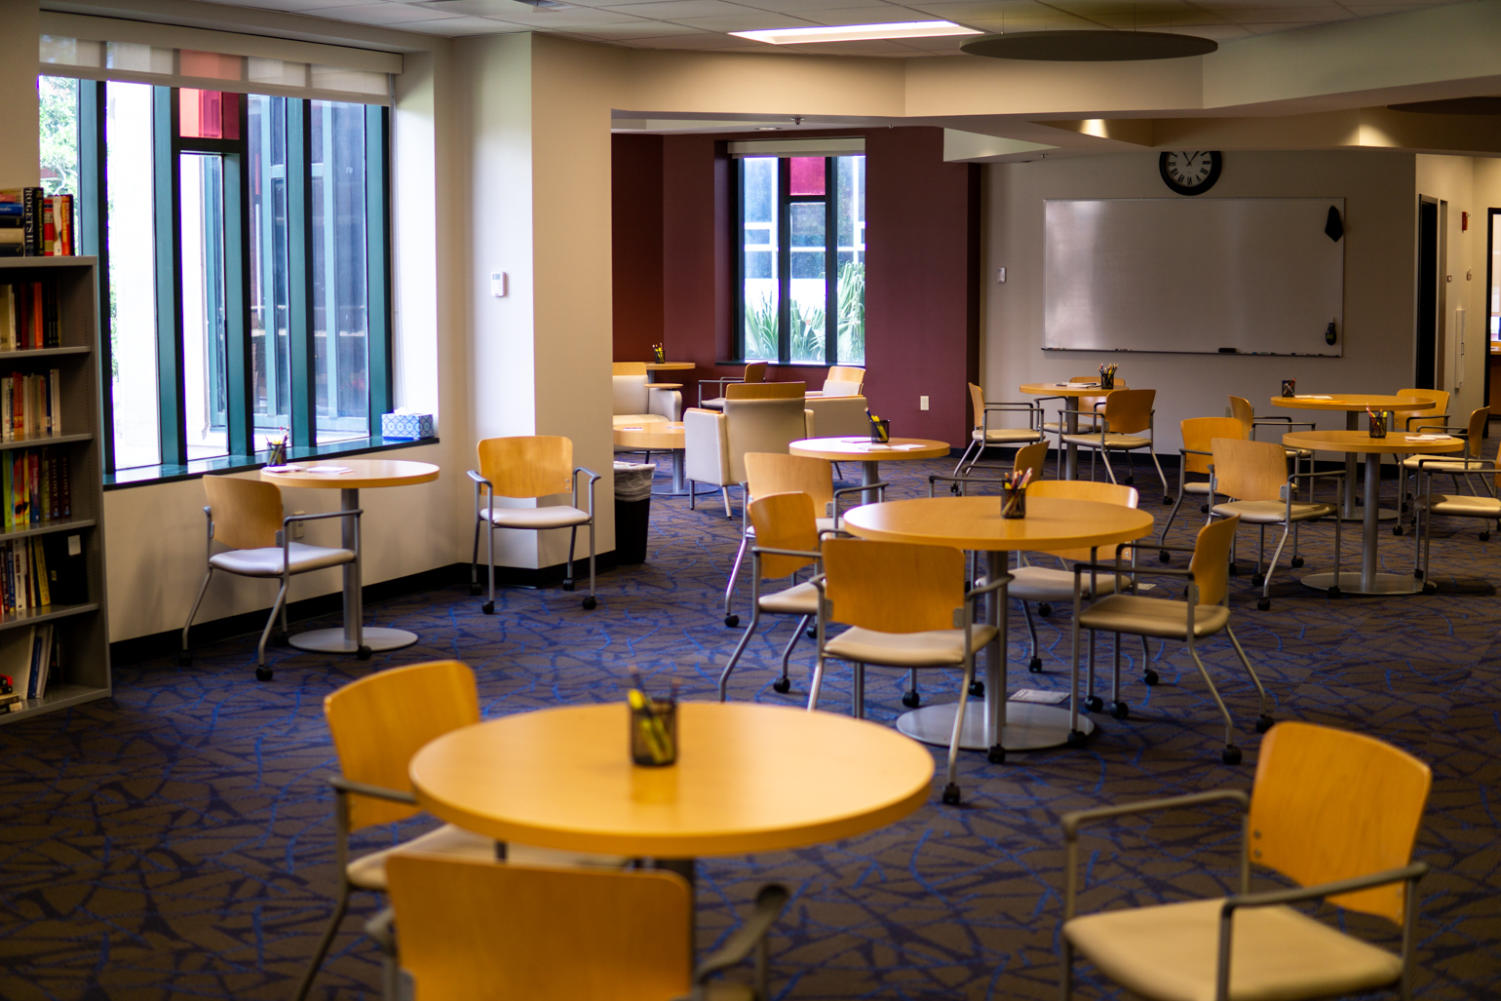 The study space of the Pan-American Life Success Center is open to all students and allows for tripled capacity for shared tutoring, study, and testing, compared to the library's previous study spaces, according to an email from the Student Success Center. Photo credit: Jacob Meyer